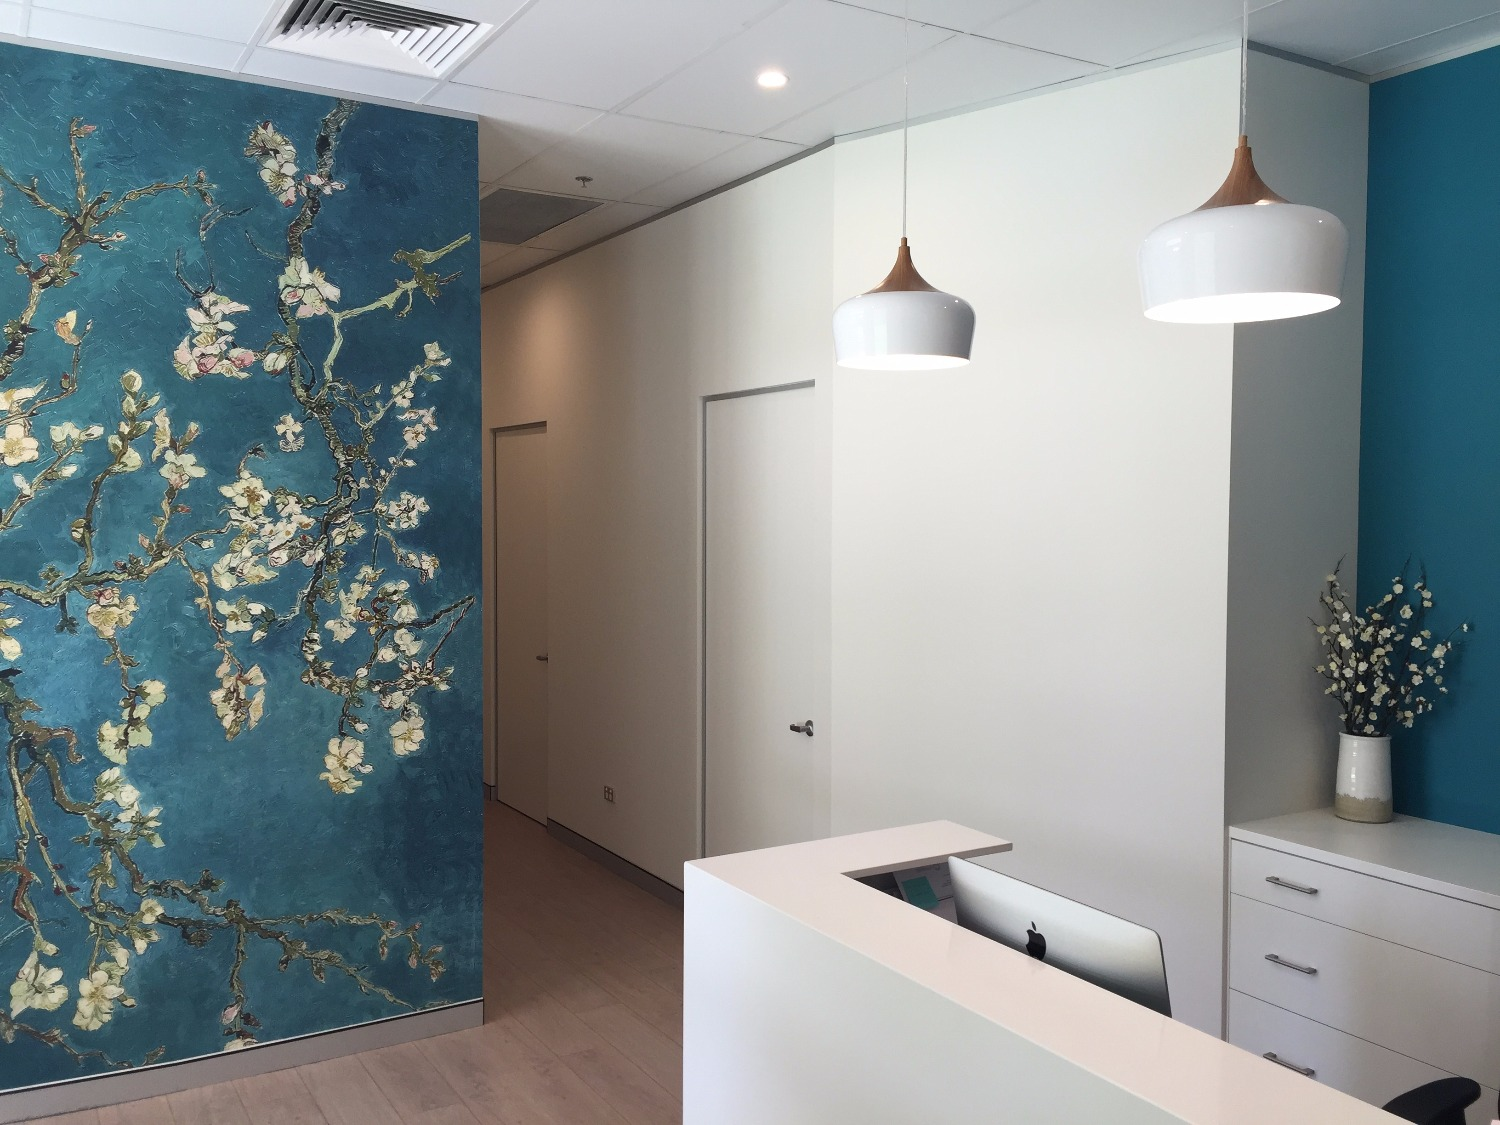 NEW BONDI JUNCTION ROOMS